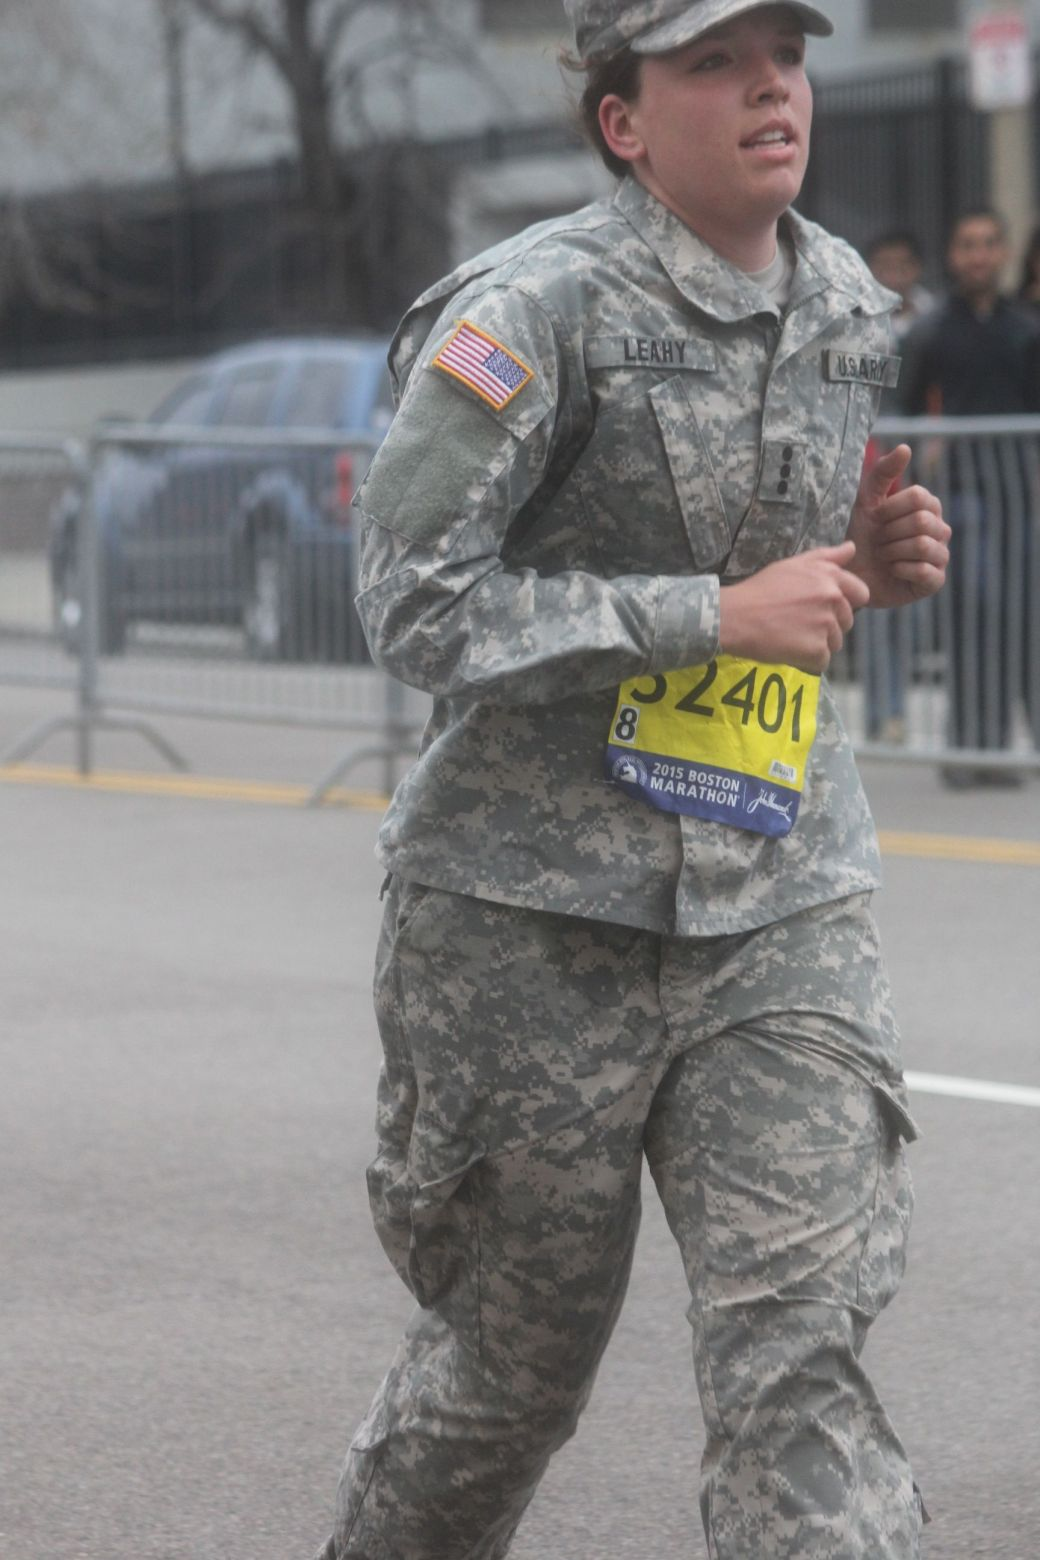 boston marathon april 20 2015 military runner number 32401